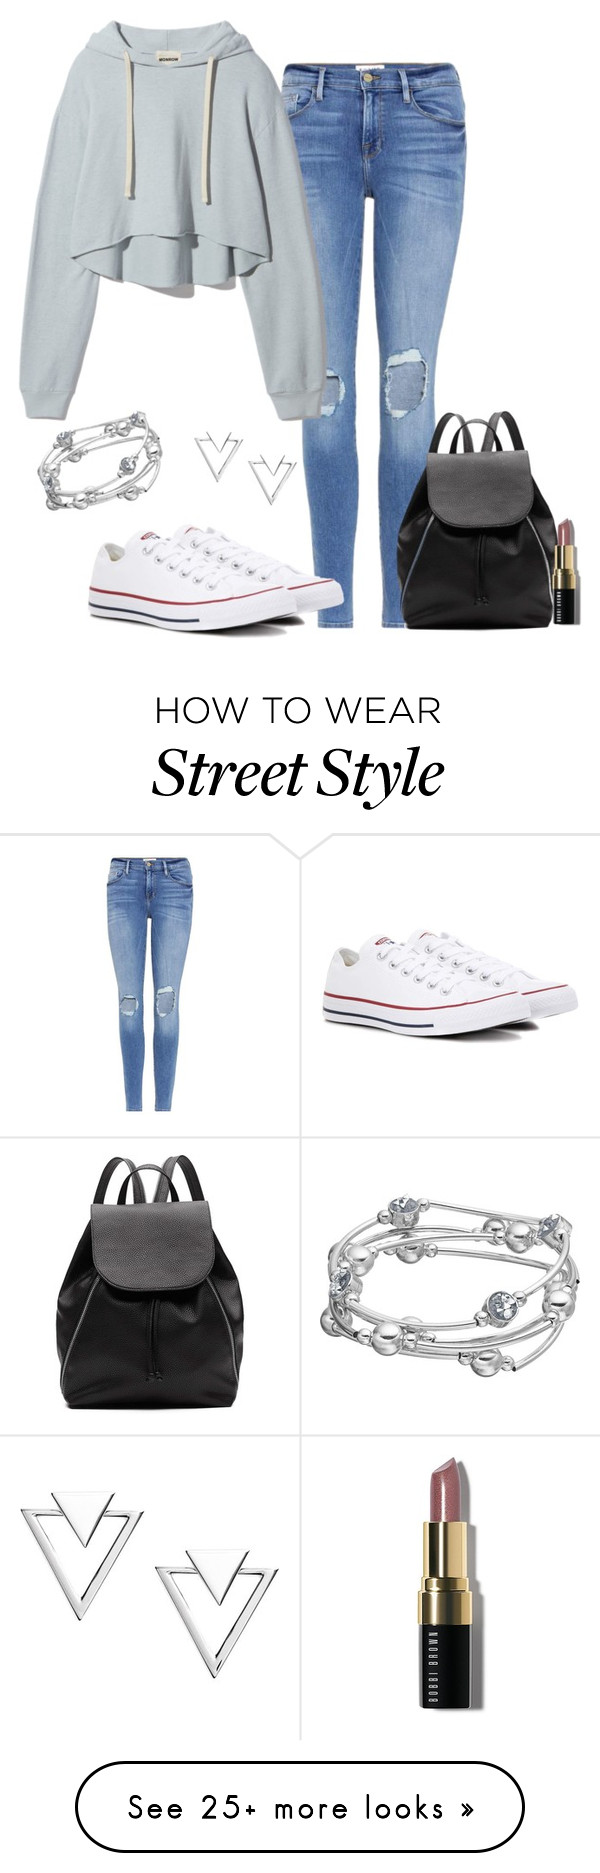 """""""Street style"""" by cris-1121 on Polyvore featuring Frame, Converse, Witchery, Nadri and Bobbi Brown Cosmetics"""